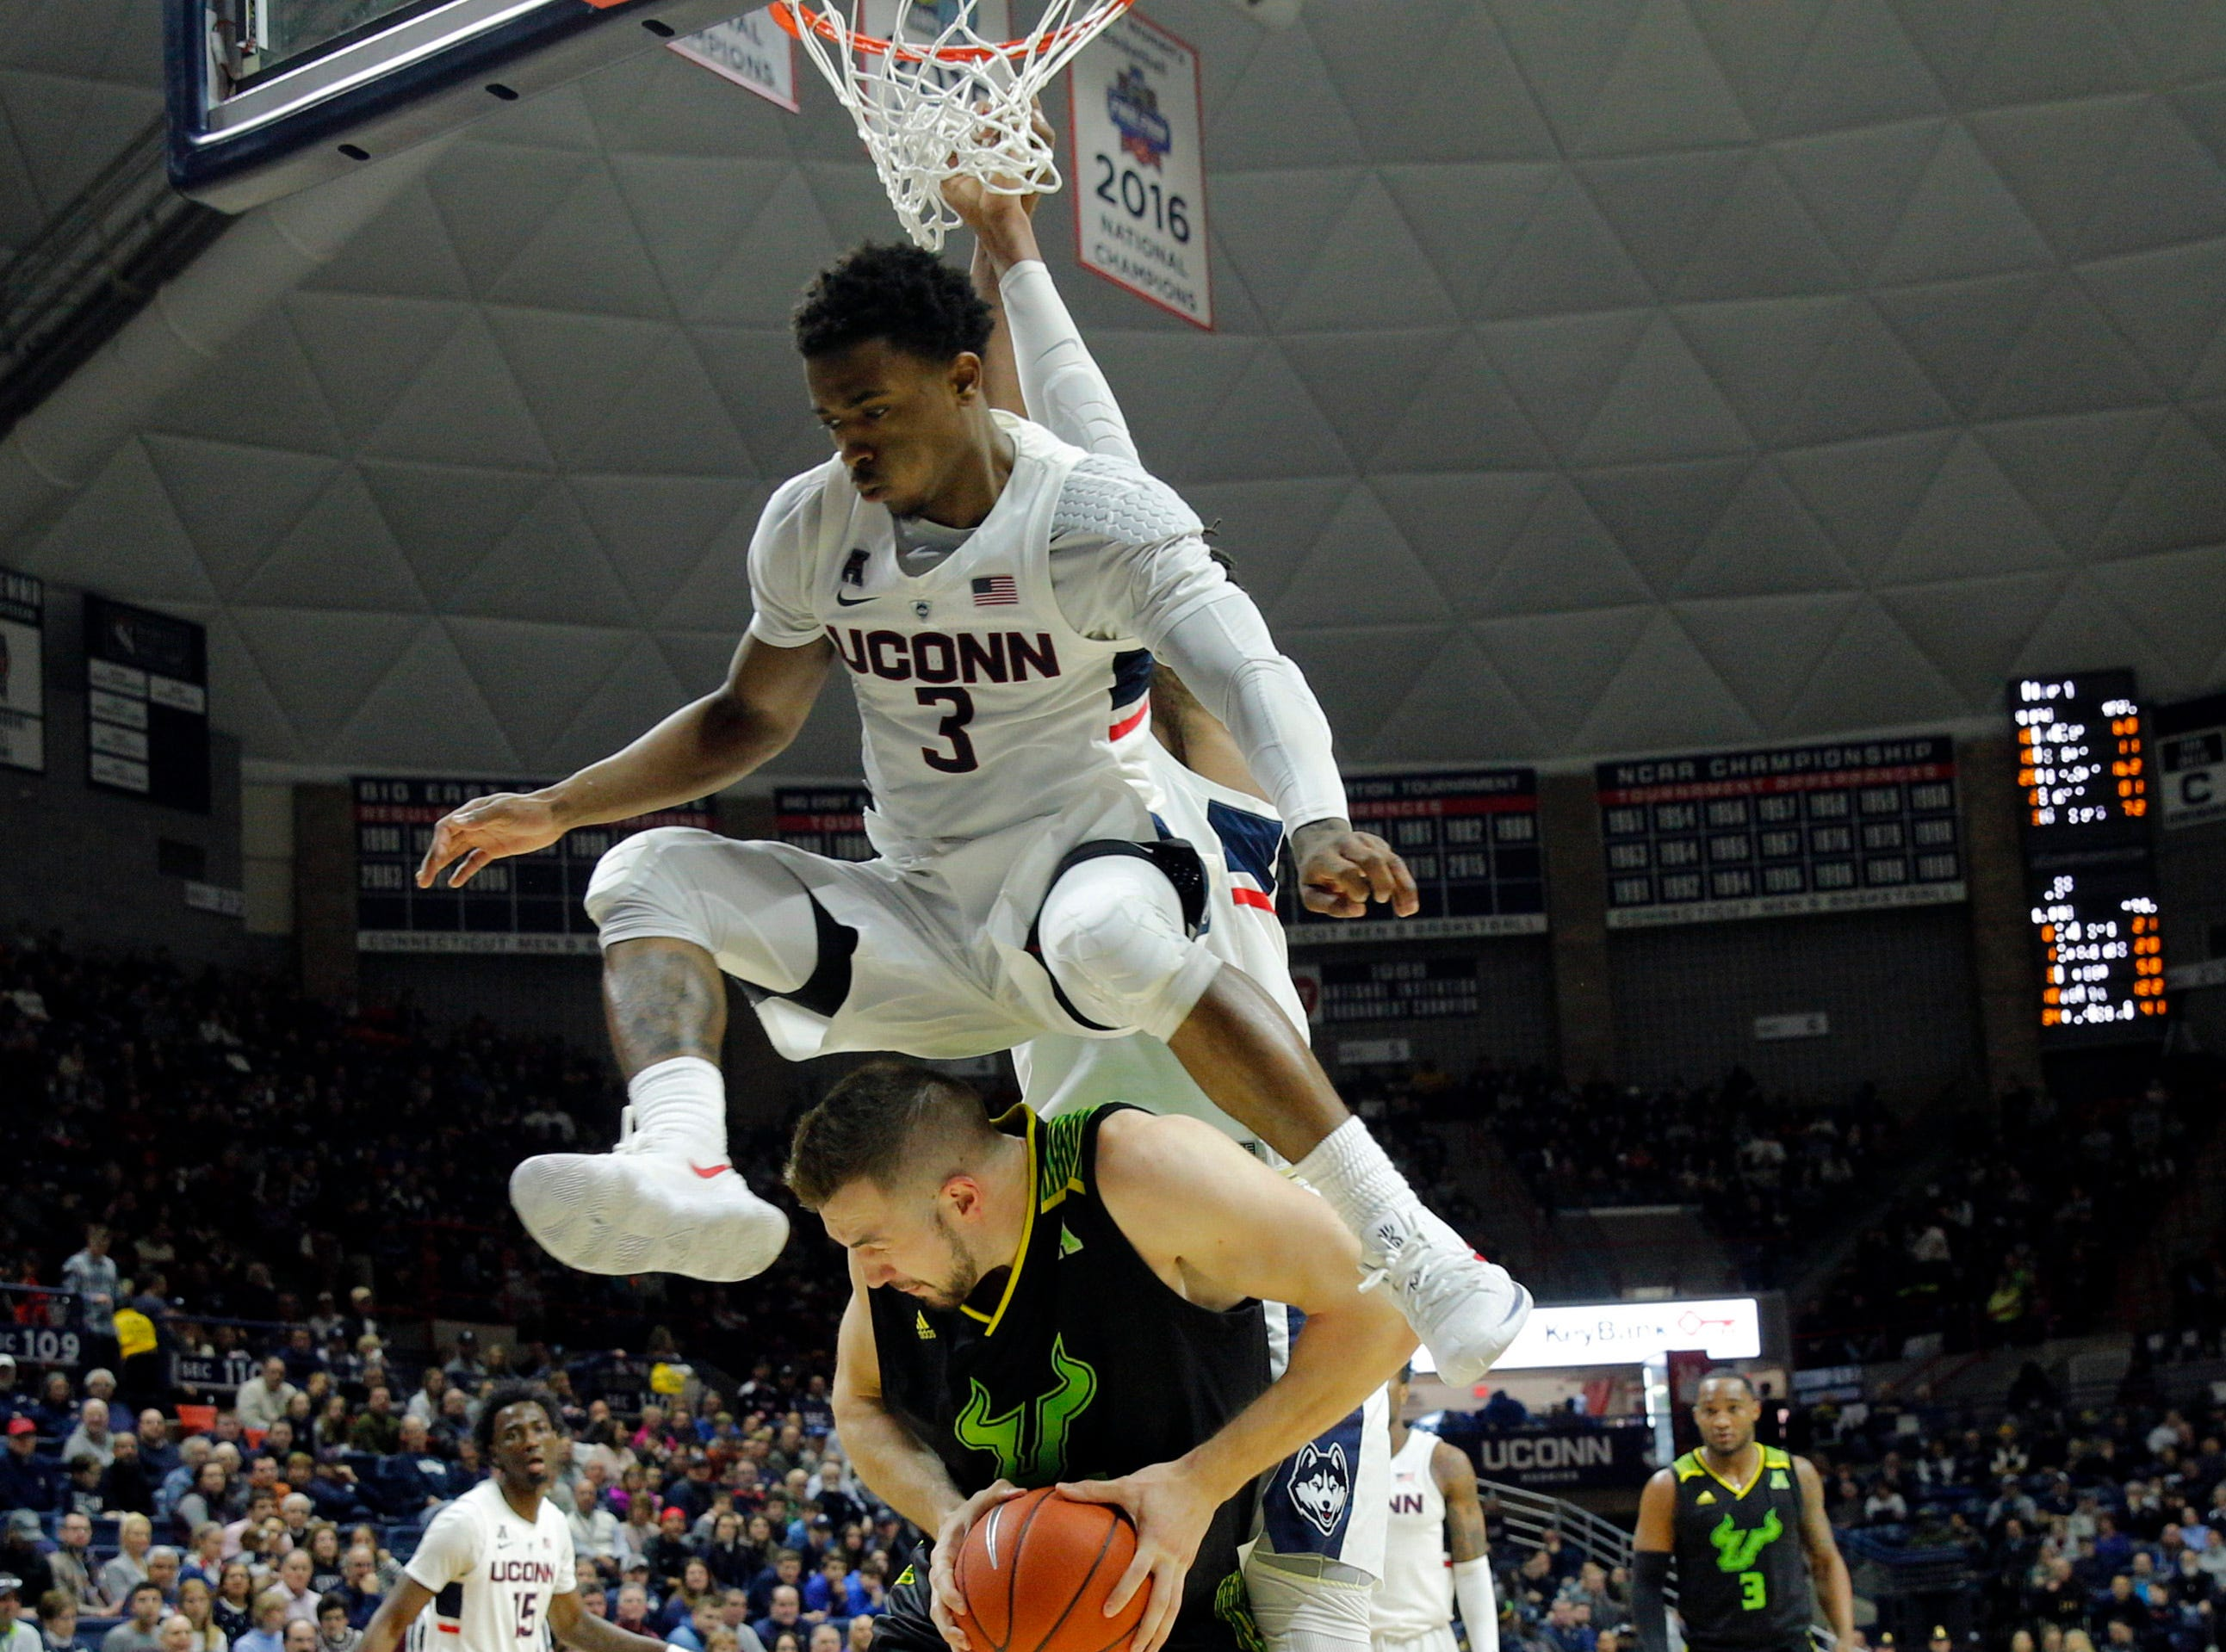 March 3: Connecticut Huskies guard Alterique Gilbert (3) defends against South Florida Bulls forward Antun Maricevic (34) in the second half at Gampel Pavilion.